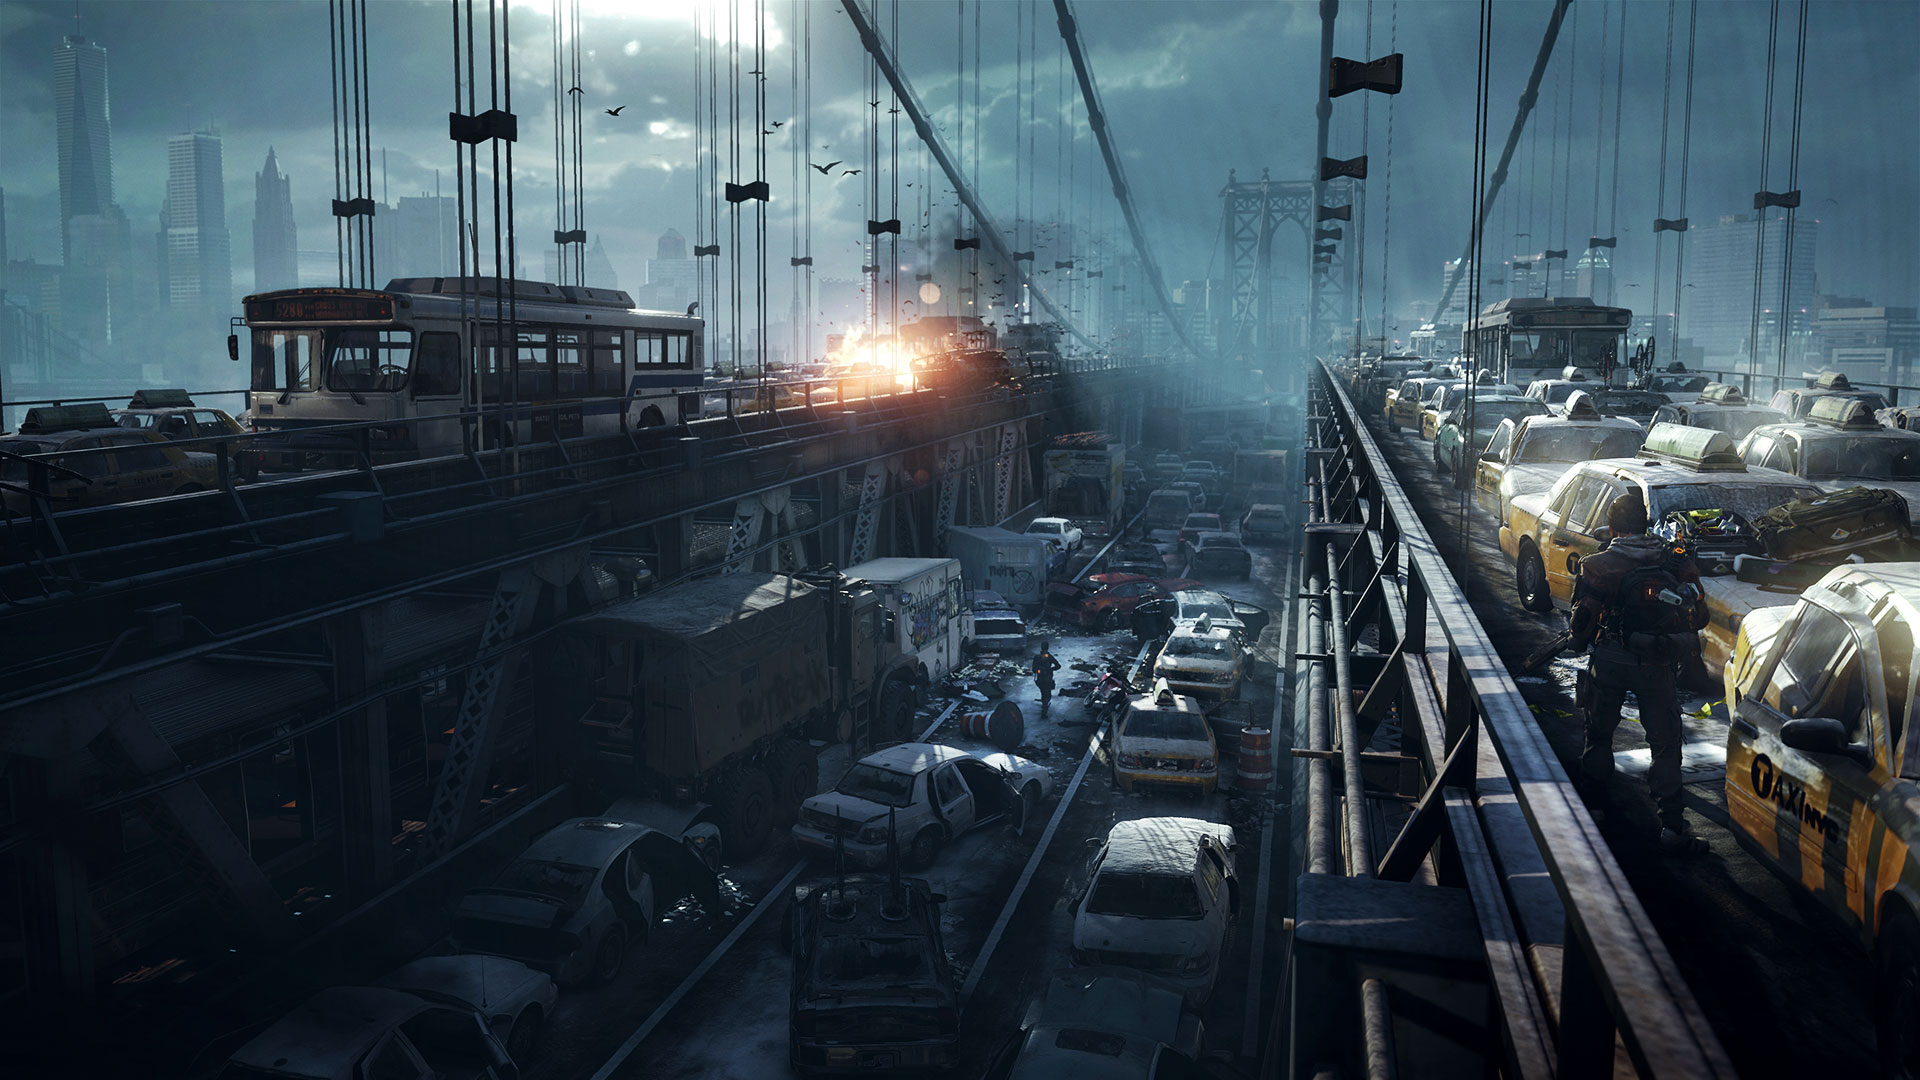 Tom Clancy's The Division Pics, Video Game Collection